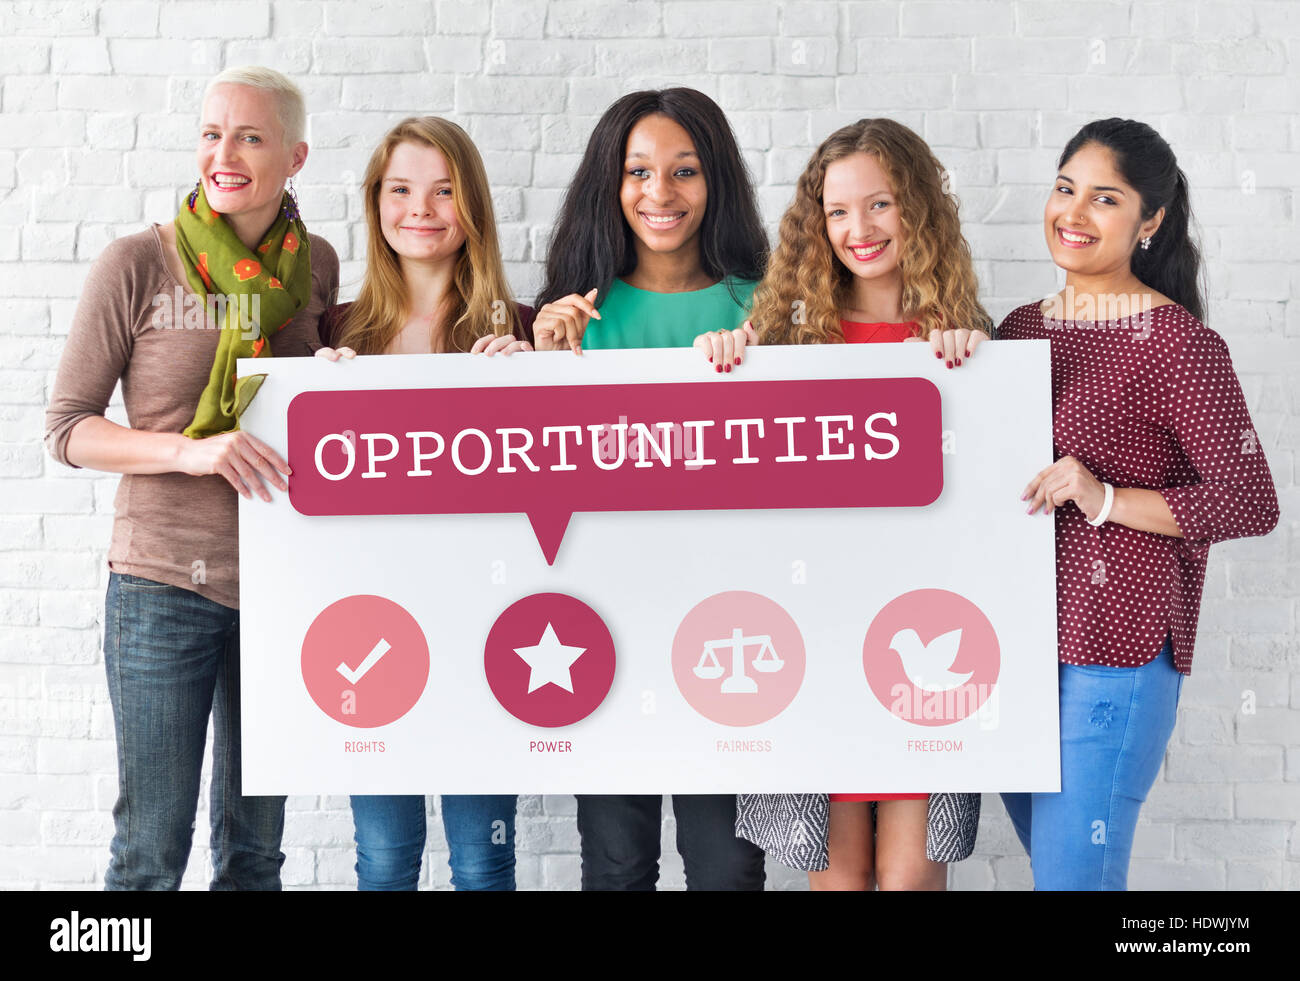 Women Rights Equality Opportunities Fairness Feminism Concept Stock Photo